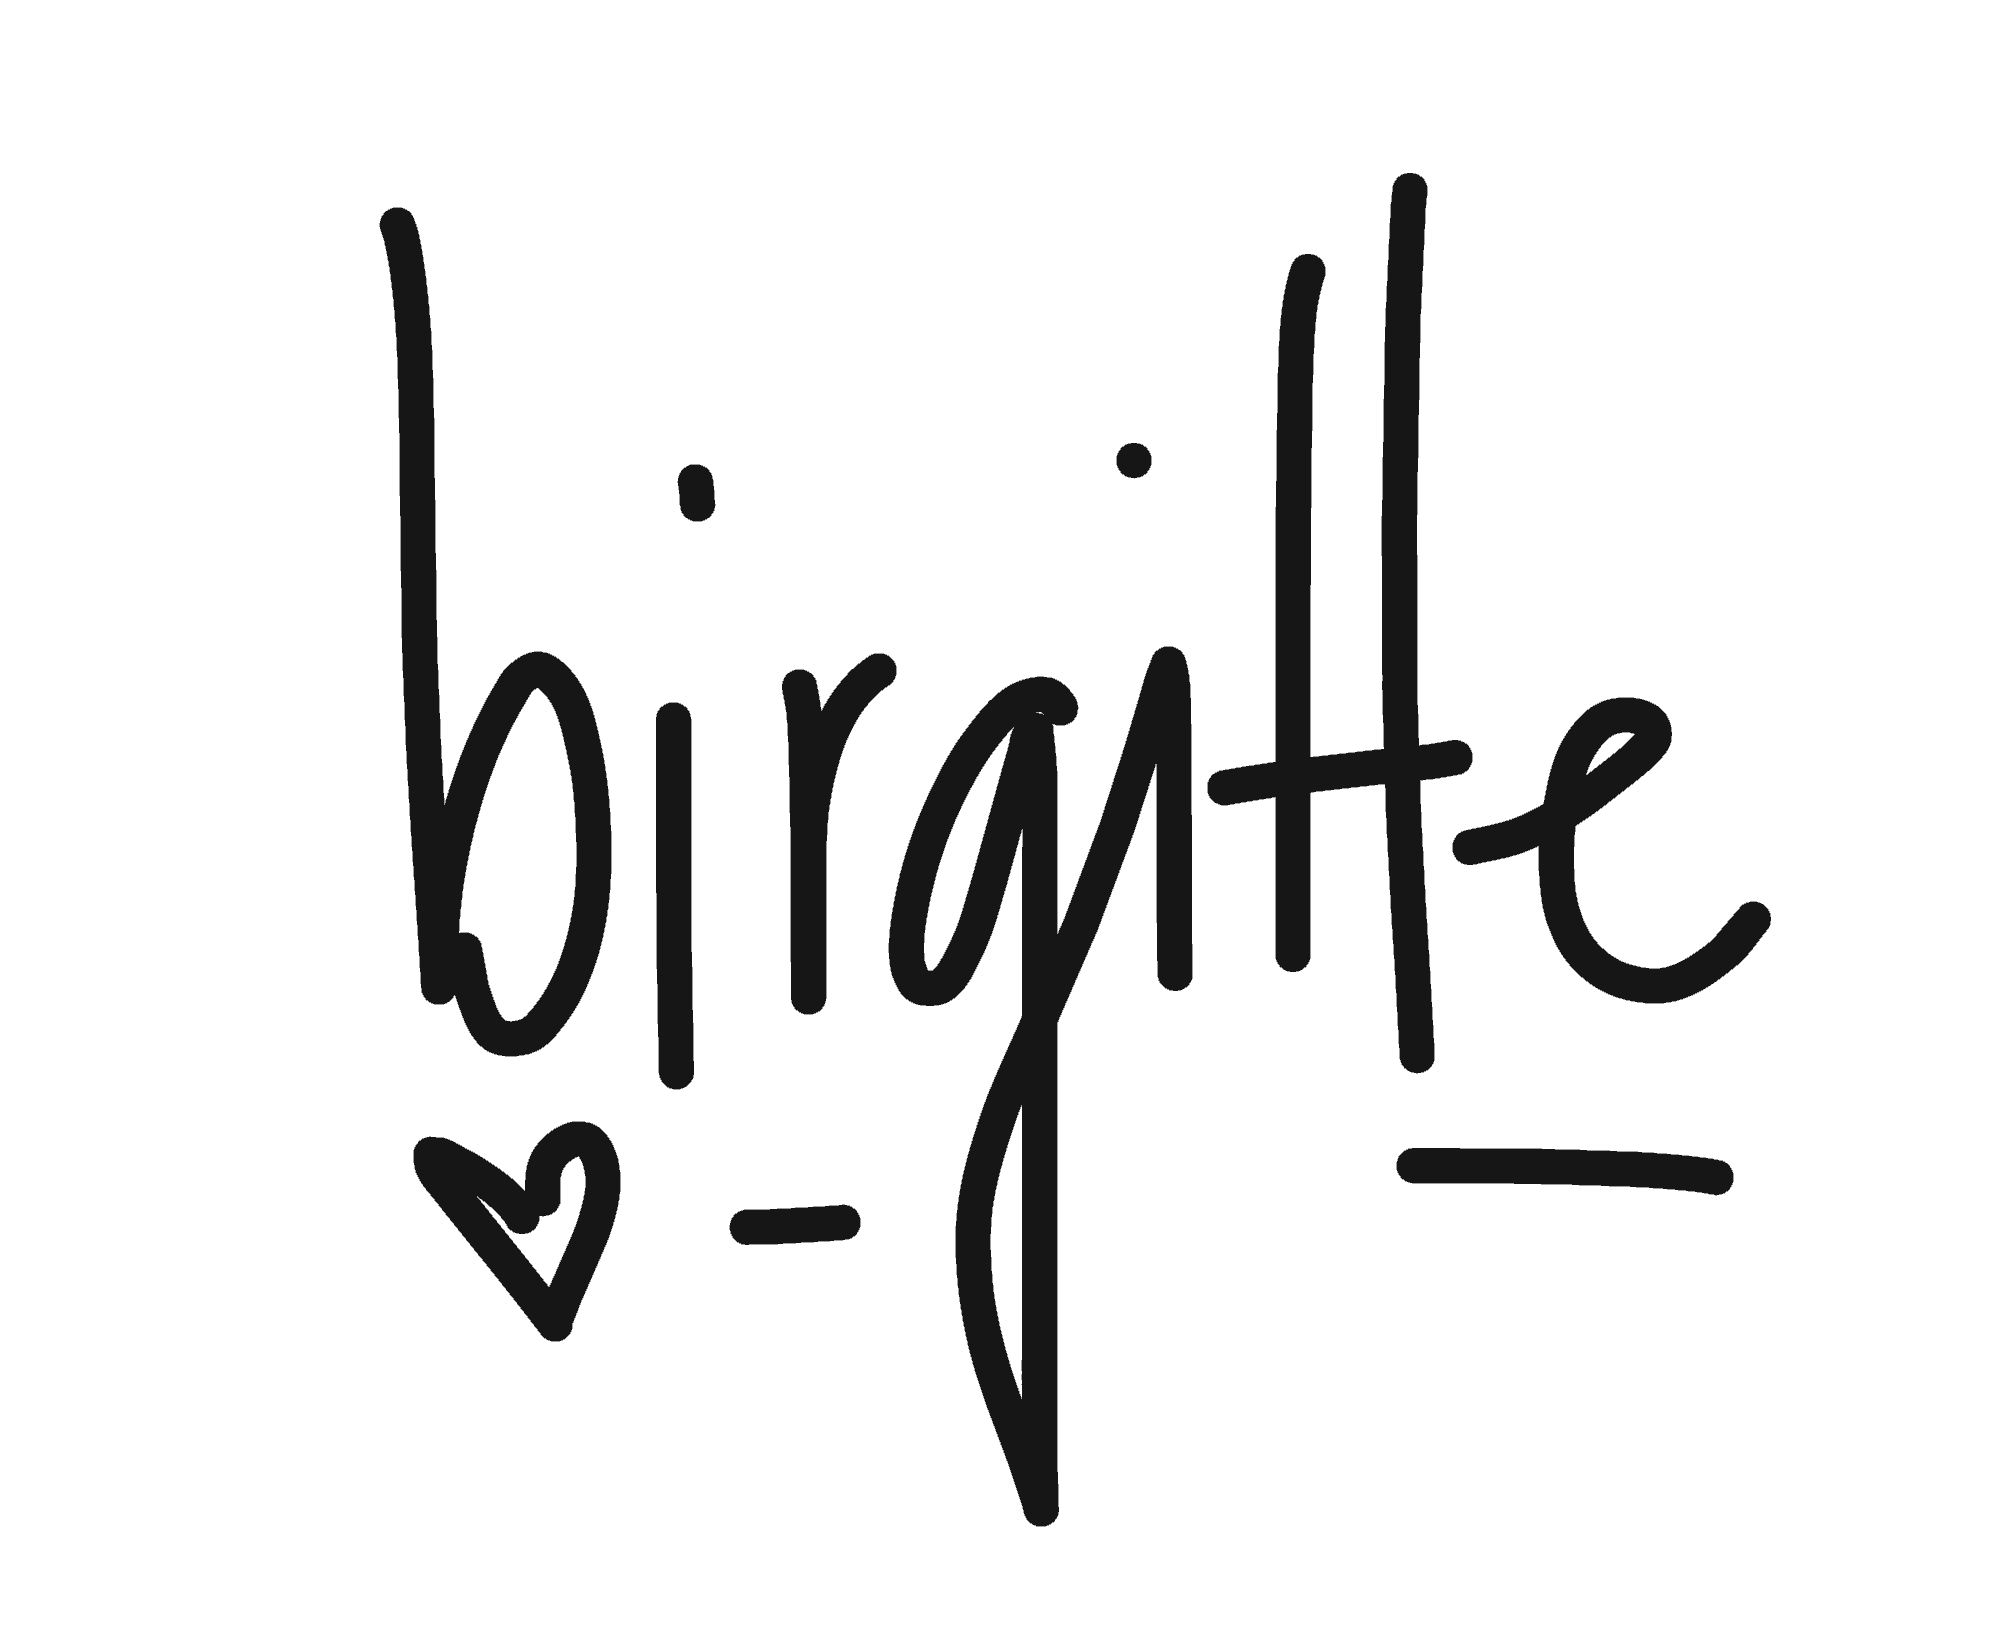 birgitte-underskrift-blog